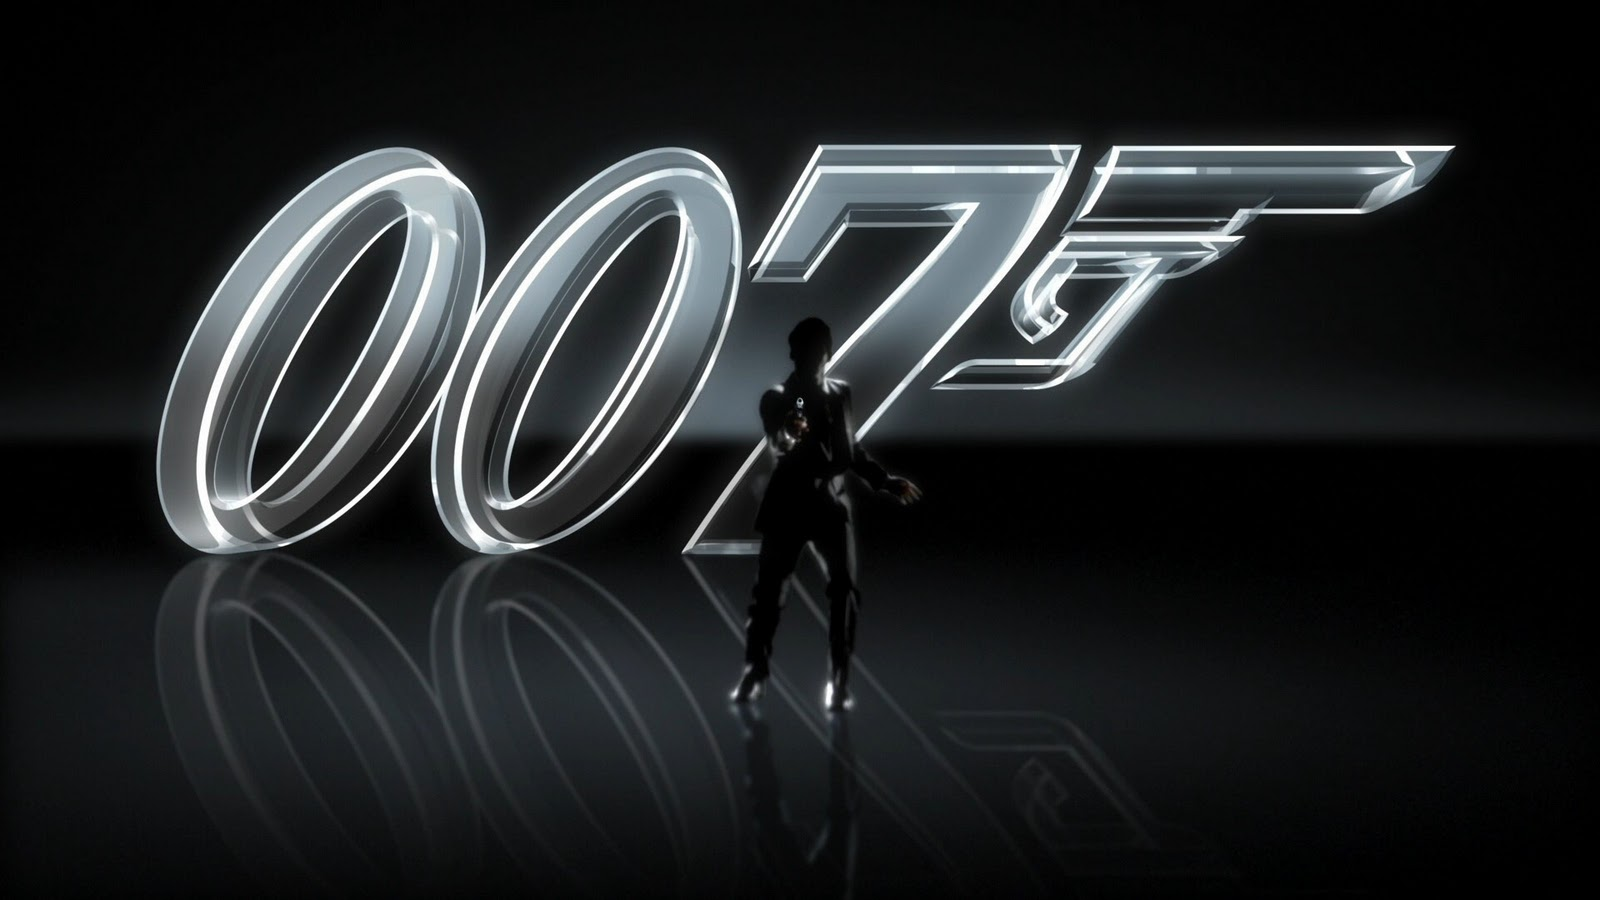 Movies hd wallpapers hd wallpapers desktop wallapers - James bond images hd ...